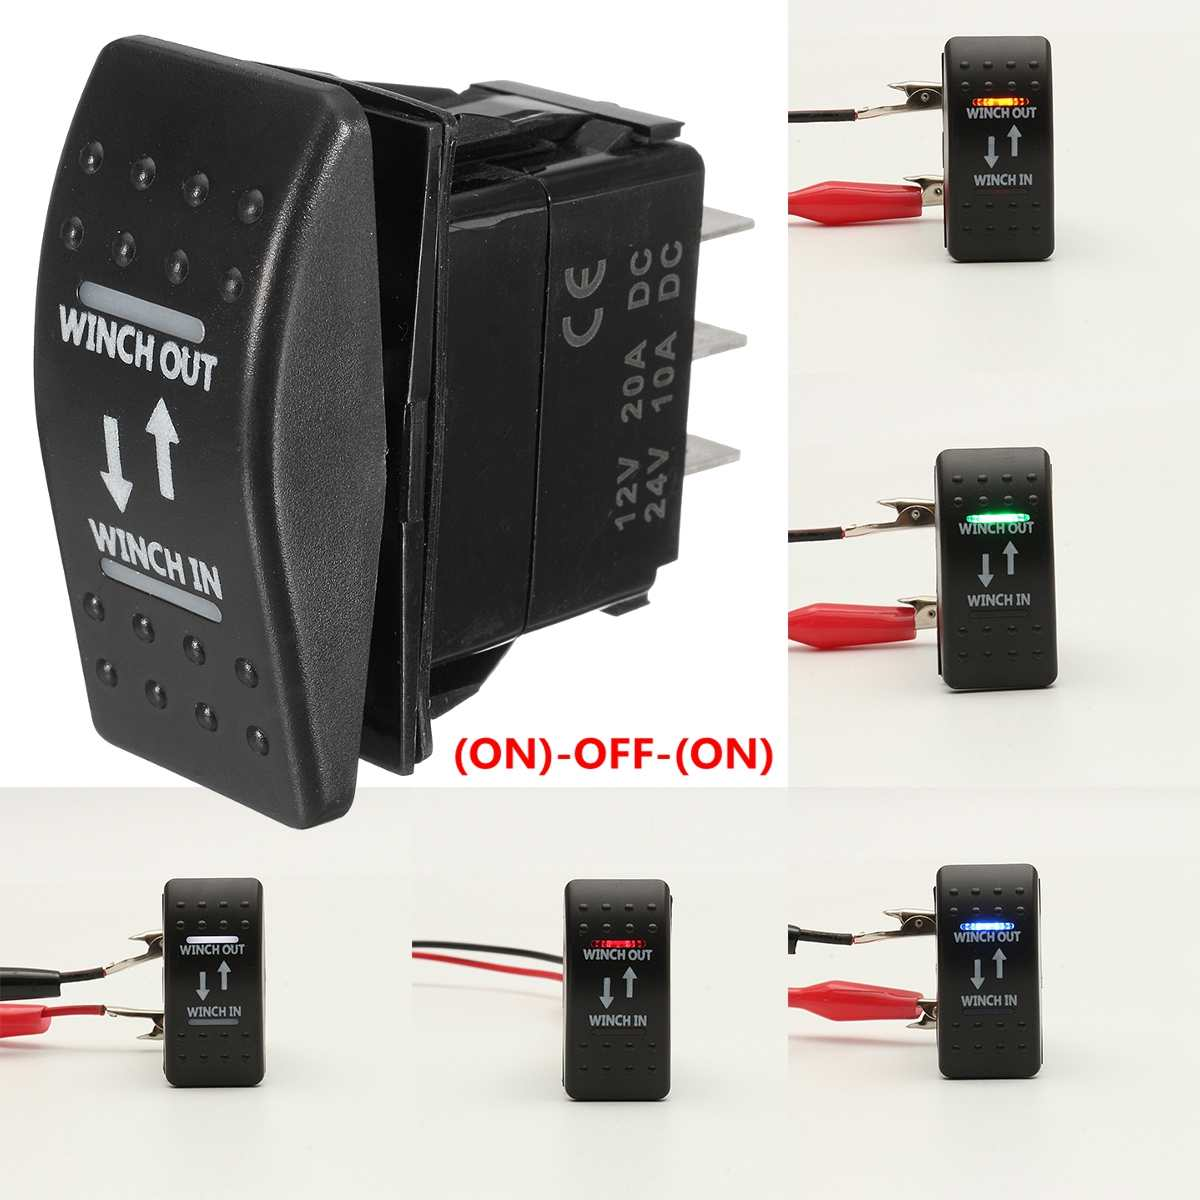 12V 20A Winch In Winch Out (ON)-OFF-(ON) Rocker Switch Momentary LED 7-Pin